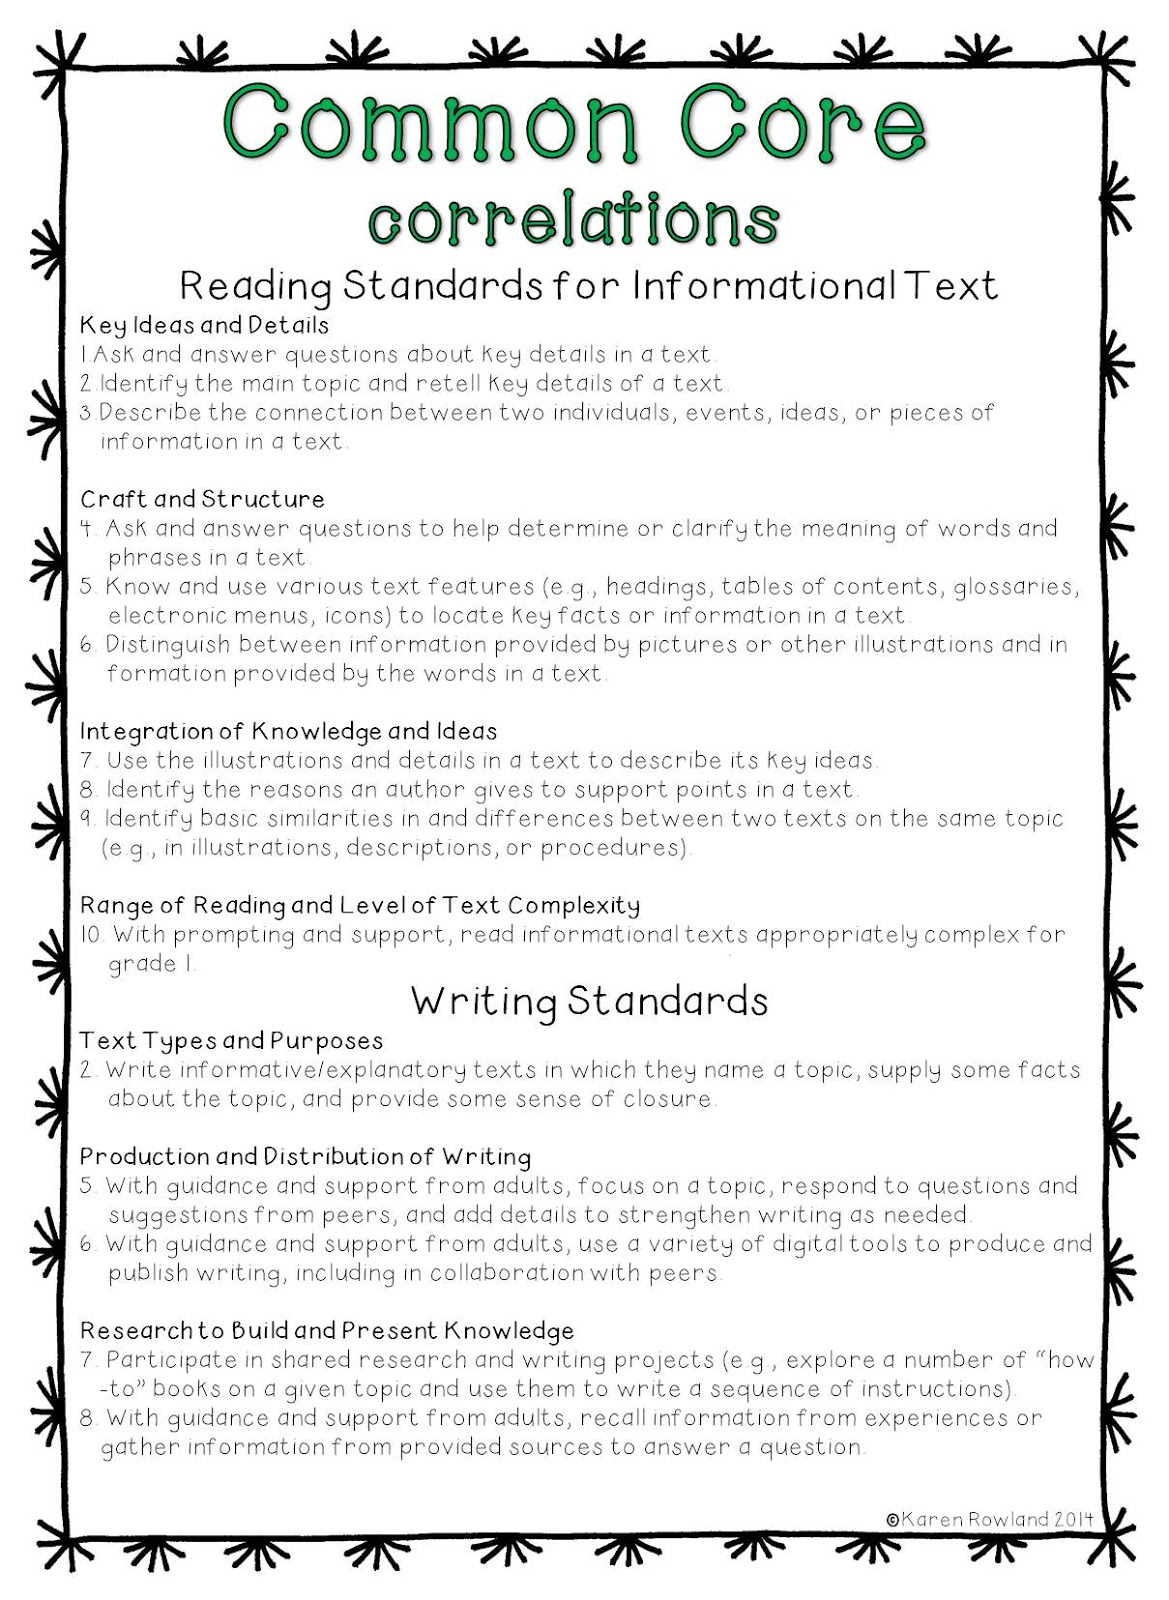 Research Summary Paper Format Custom Writing Help Worth Customer Service Telephone Etiquette This Image Shows